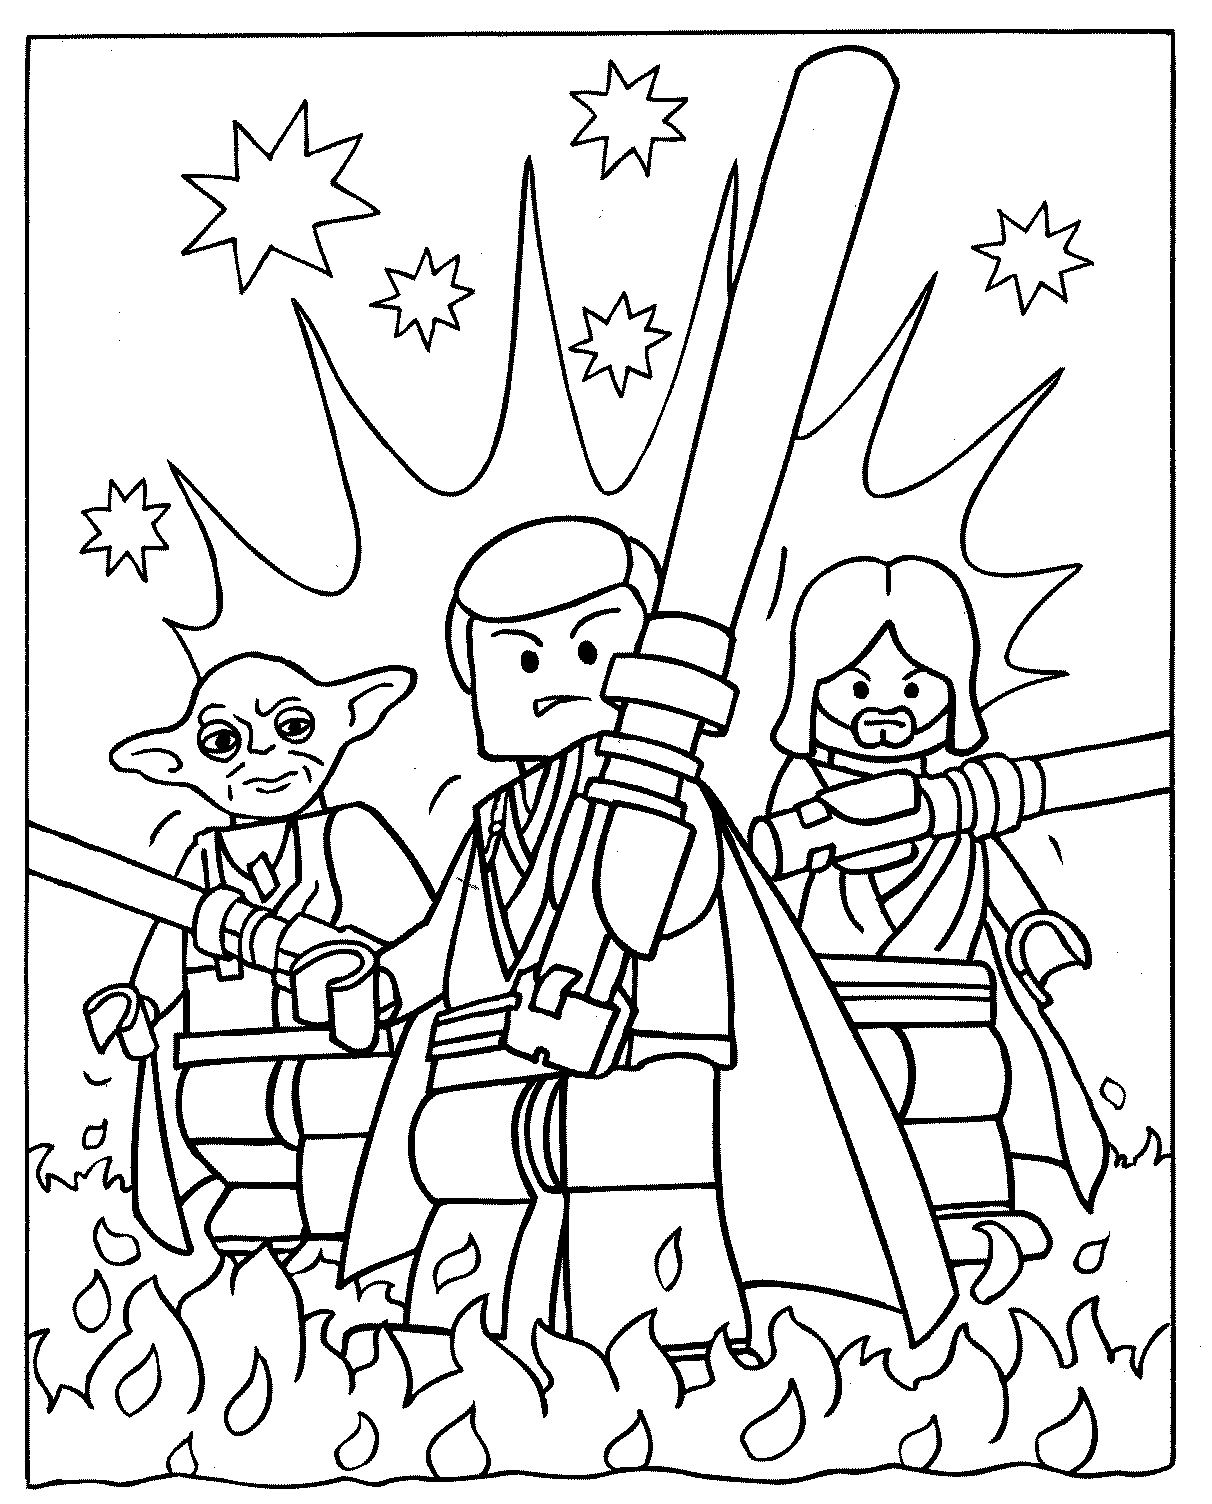 Free printable star wars coloring pages for kids for Free printable lego coloring pages for kids